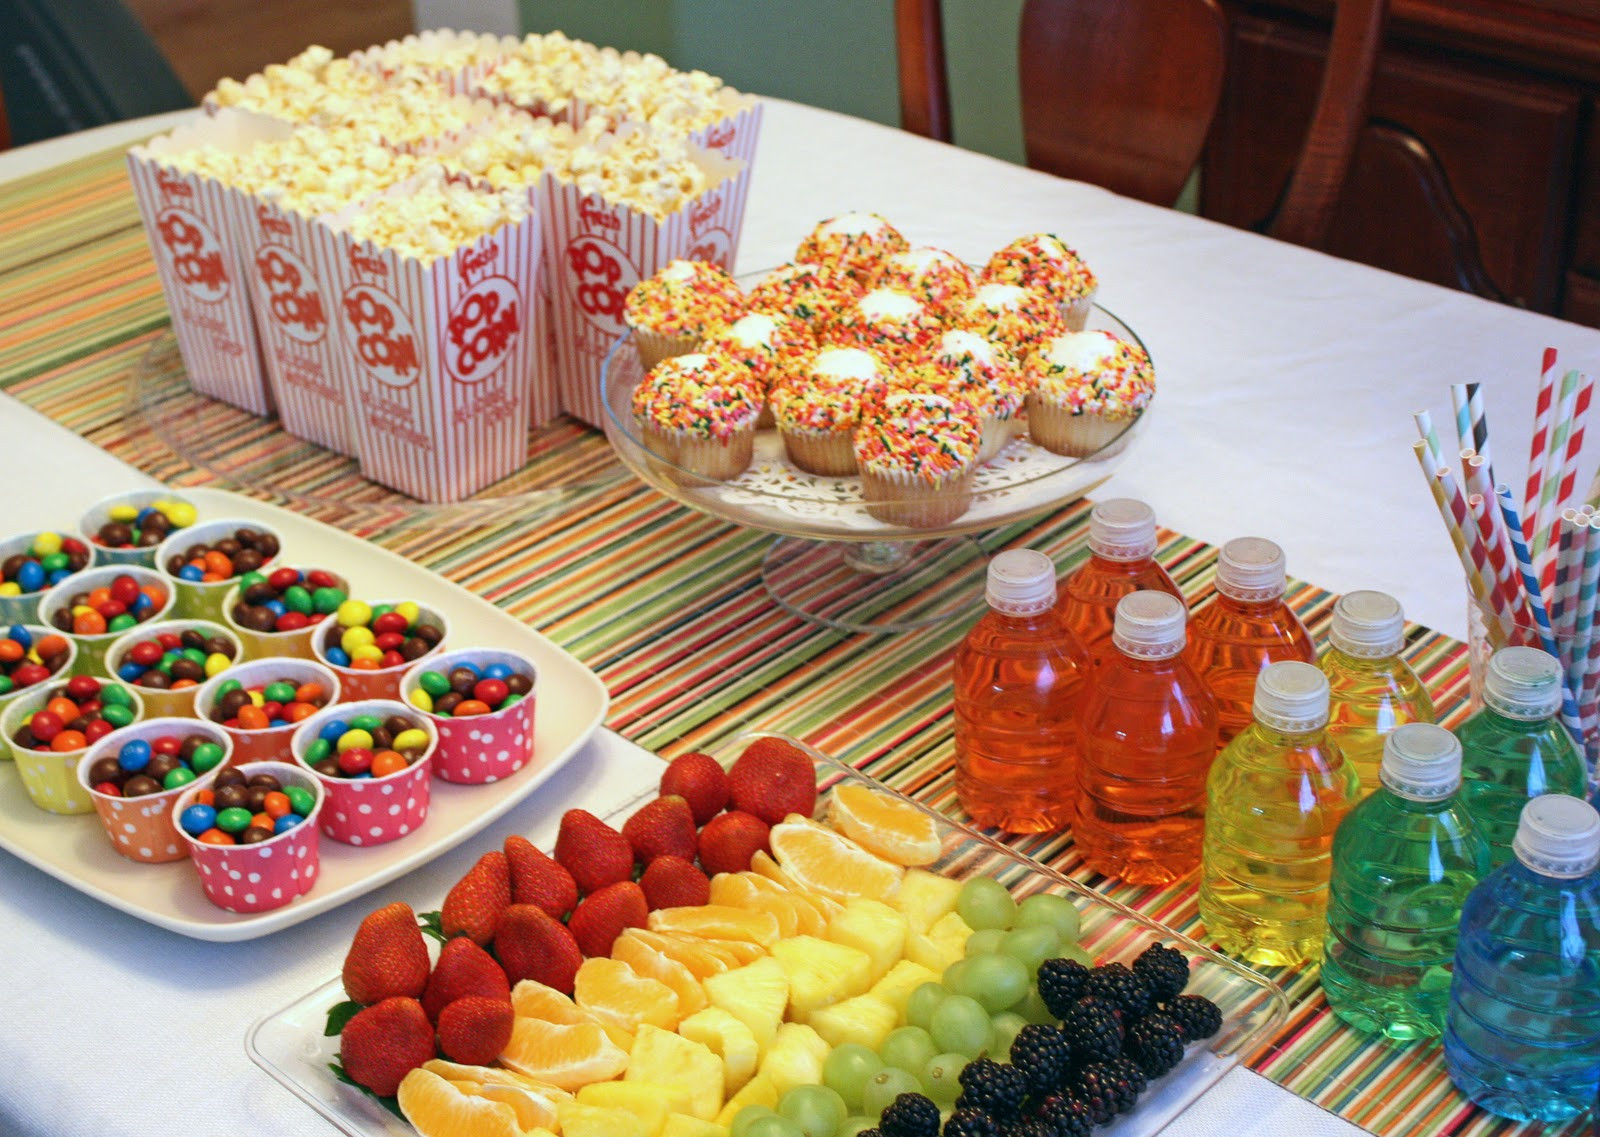 Party Food Ideas For Kids  Dreaming In Scraps Muppets rainbows and 10 crazy girls